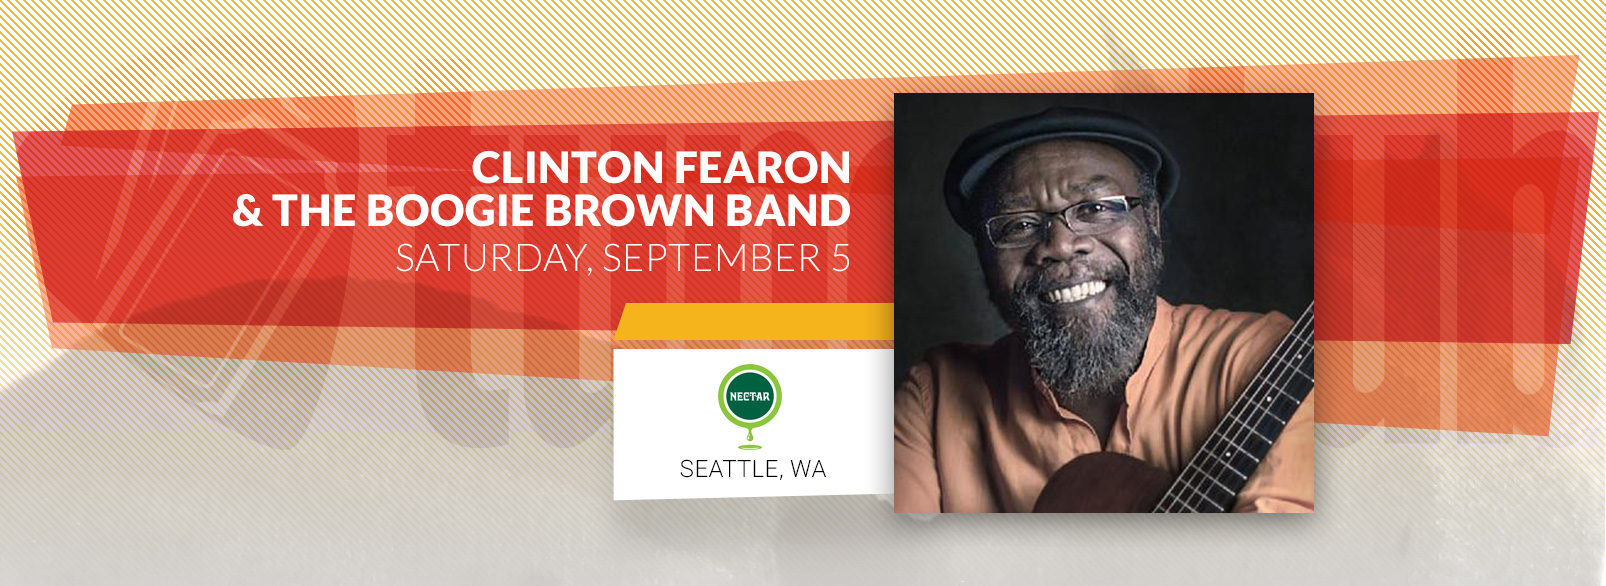 Clinton Fearon & The Boogie Brown Band